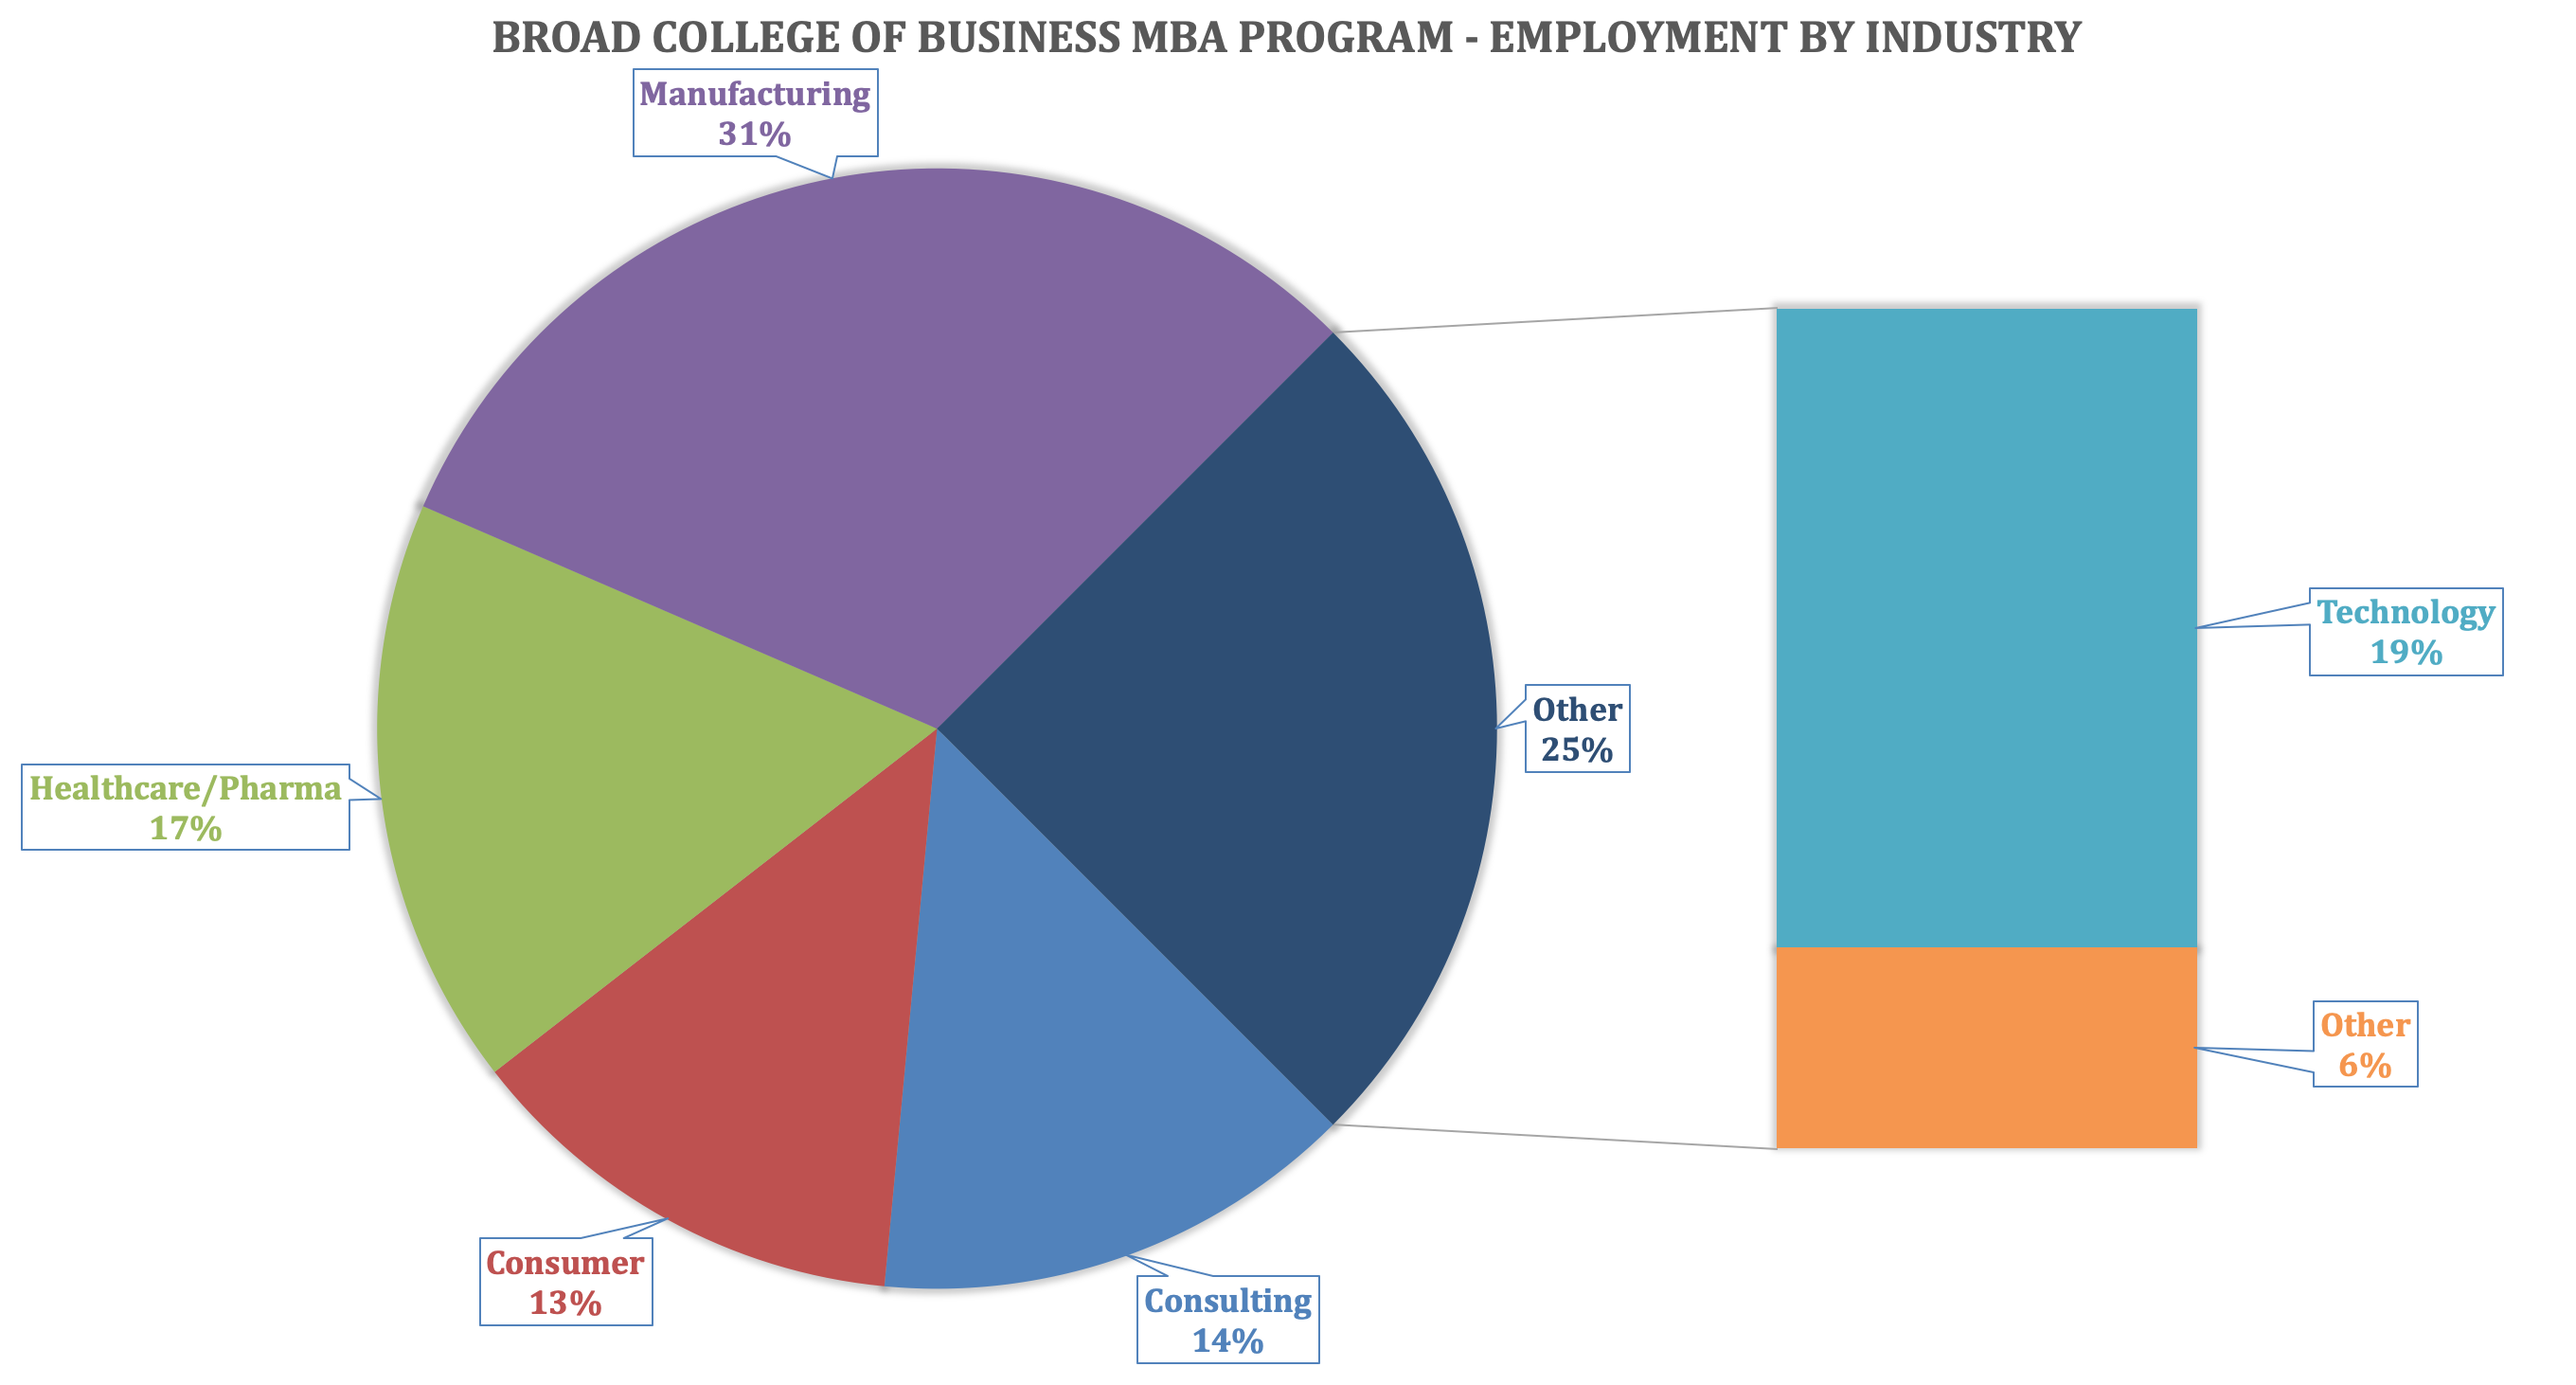 MSU MBA - Broad College of Business - Employment by Industry